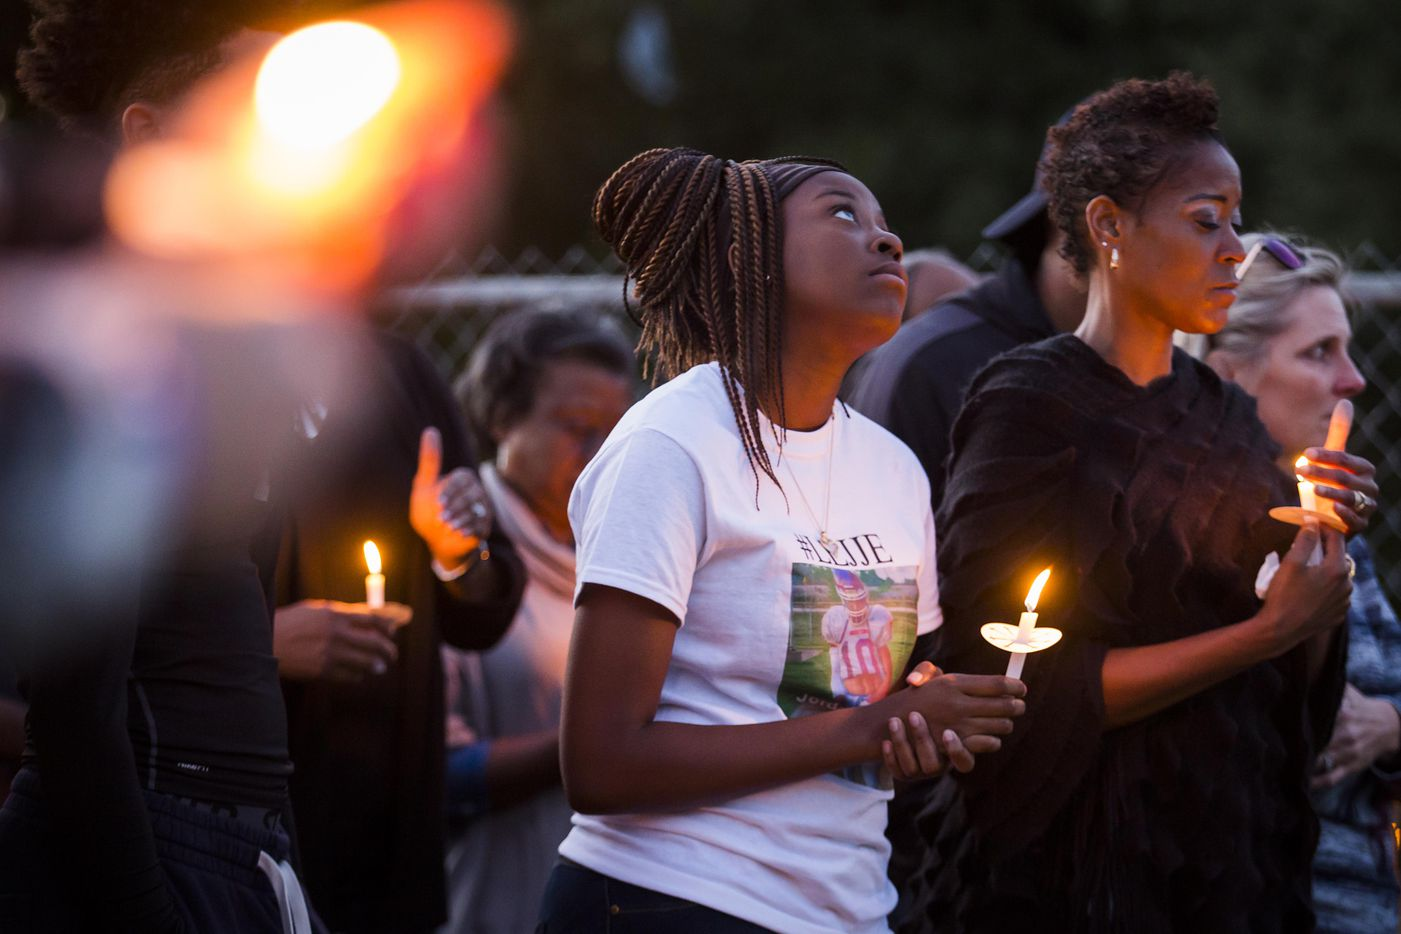 """Ashuntae Coleman, 14, stands with her mother Demetria Brown (right) attend the """"Remember His Name: Vigil for Jordan Edwards"""" candlelight vigil at Virgil T. Irwin Park on Thursday, May 4, 2017, in Balch Springs, Texas."""